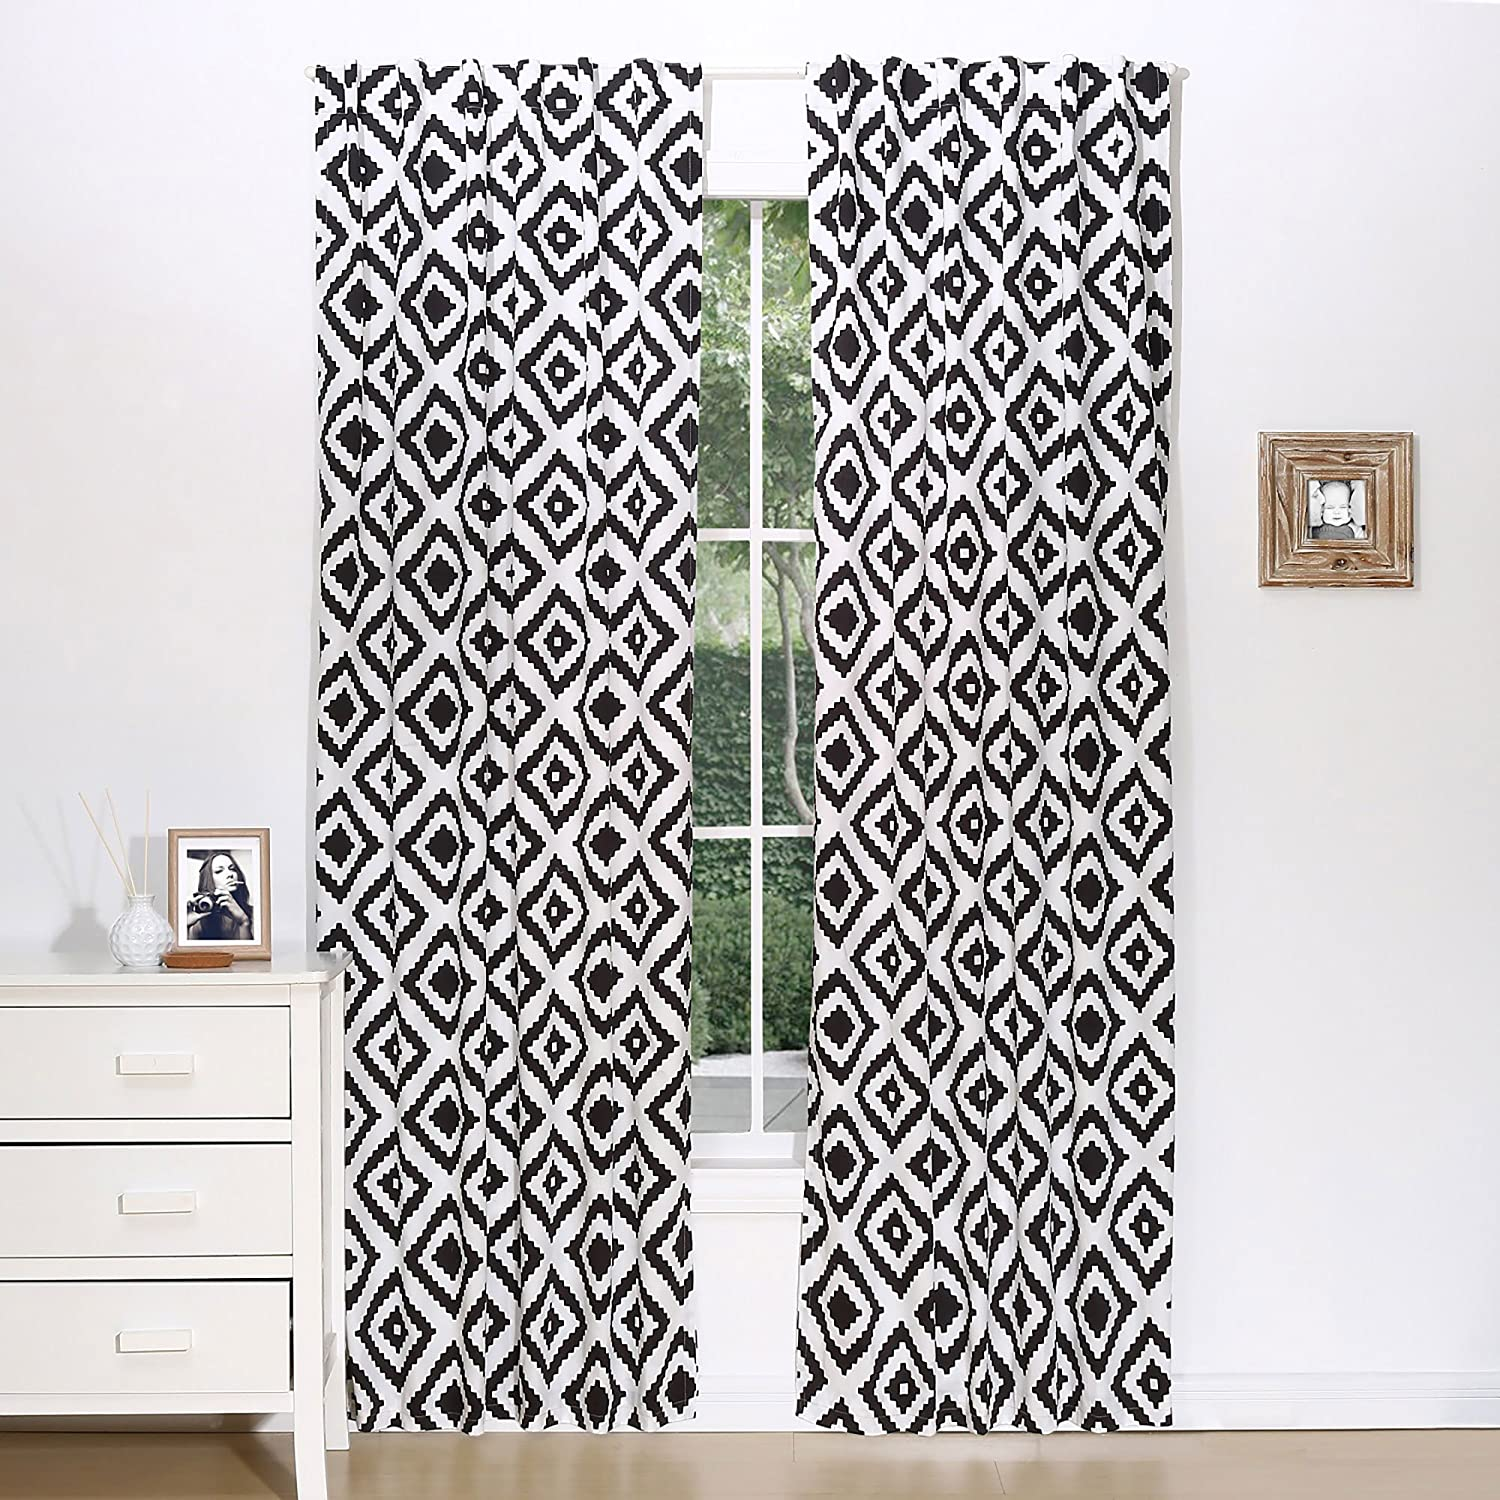 Black Diamond Tile Print Window Drapery Panels - Set of Two 84 by 42 Inch Panels Farallon Brands WP2DIBK